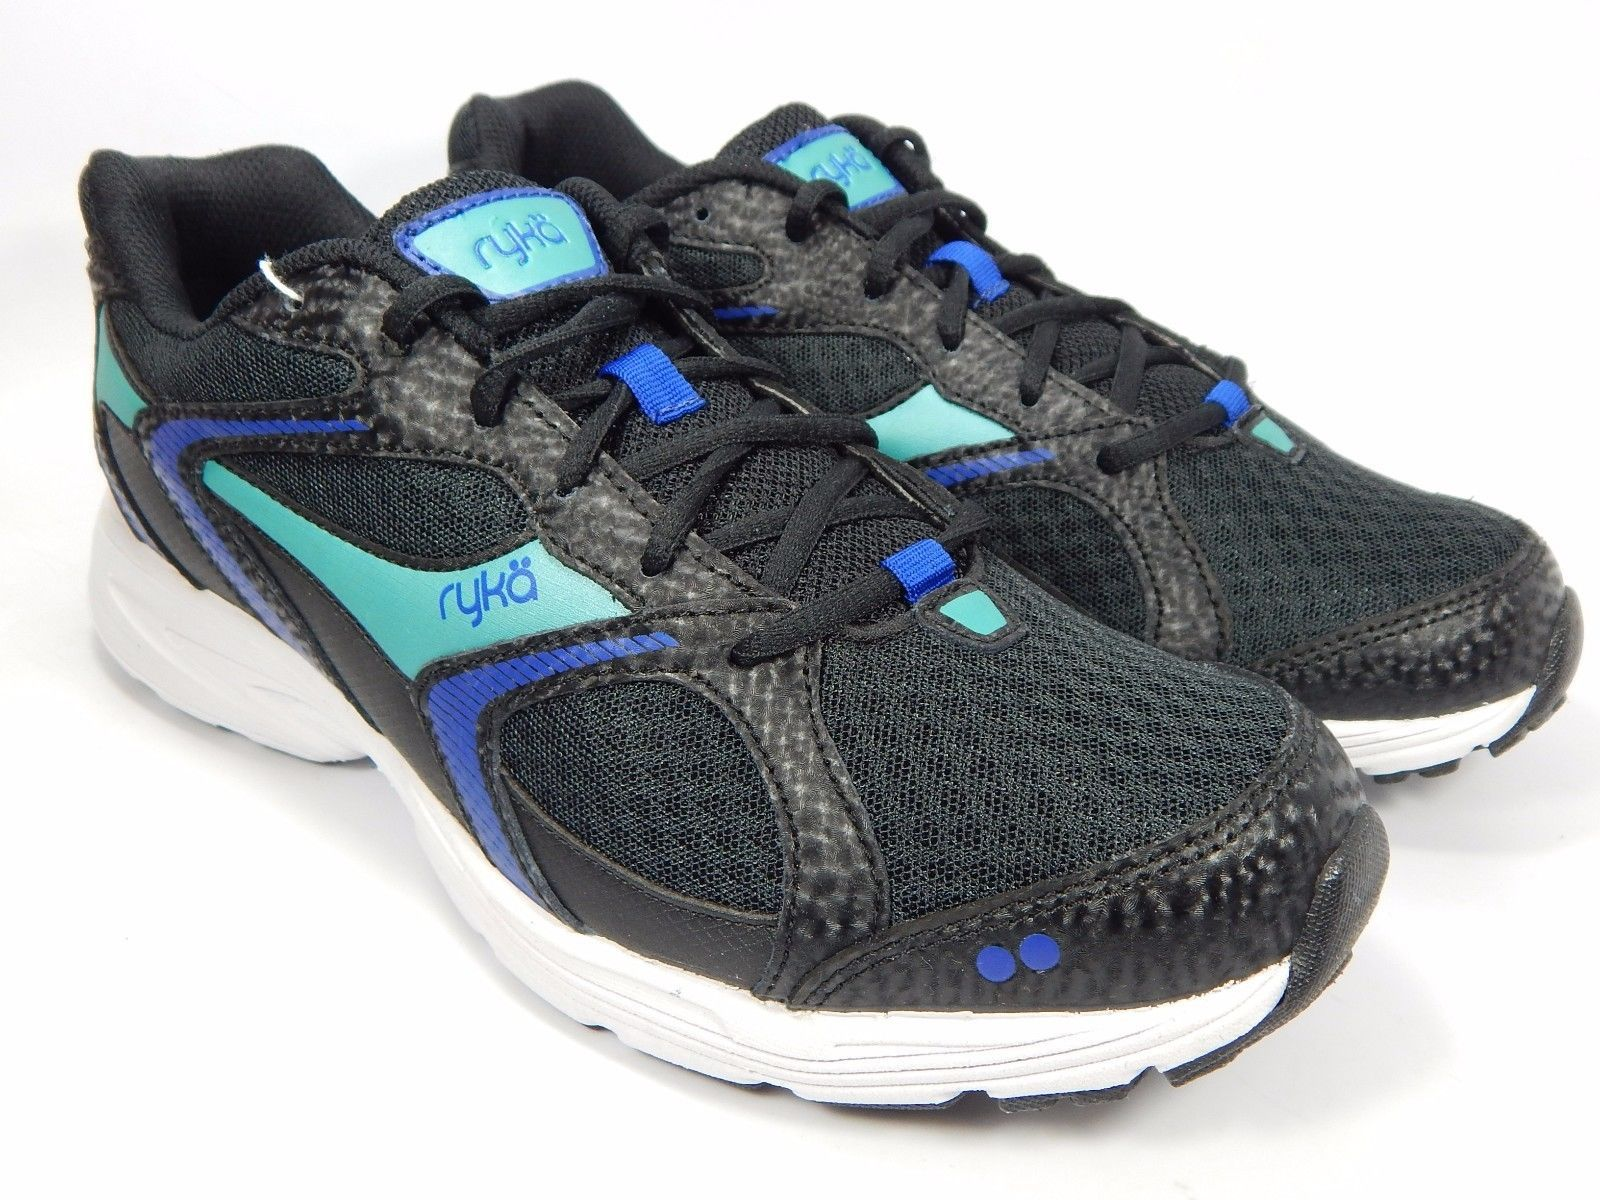 Ryka Streak SMR Women's Running Shoes Size US 8 M (B) EU 39 Black Aqua Blue